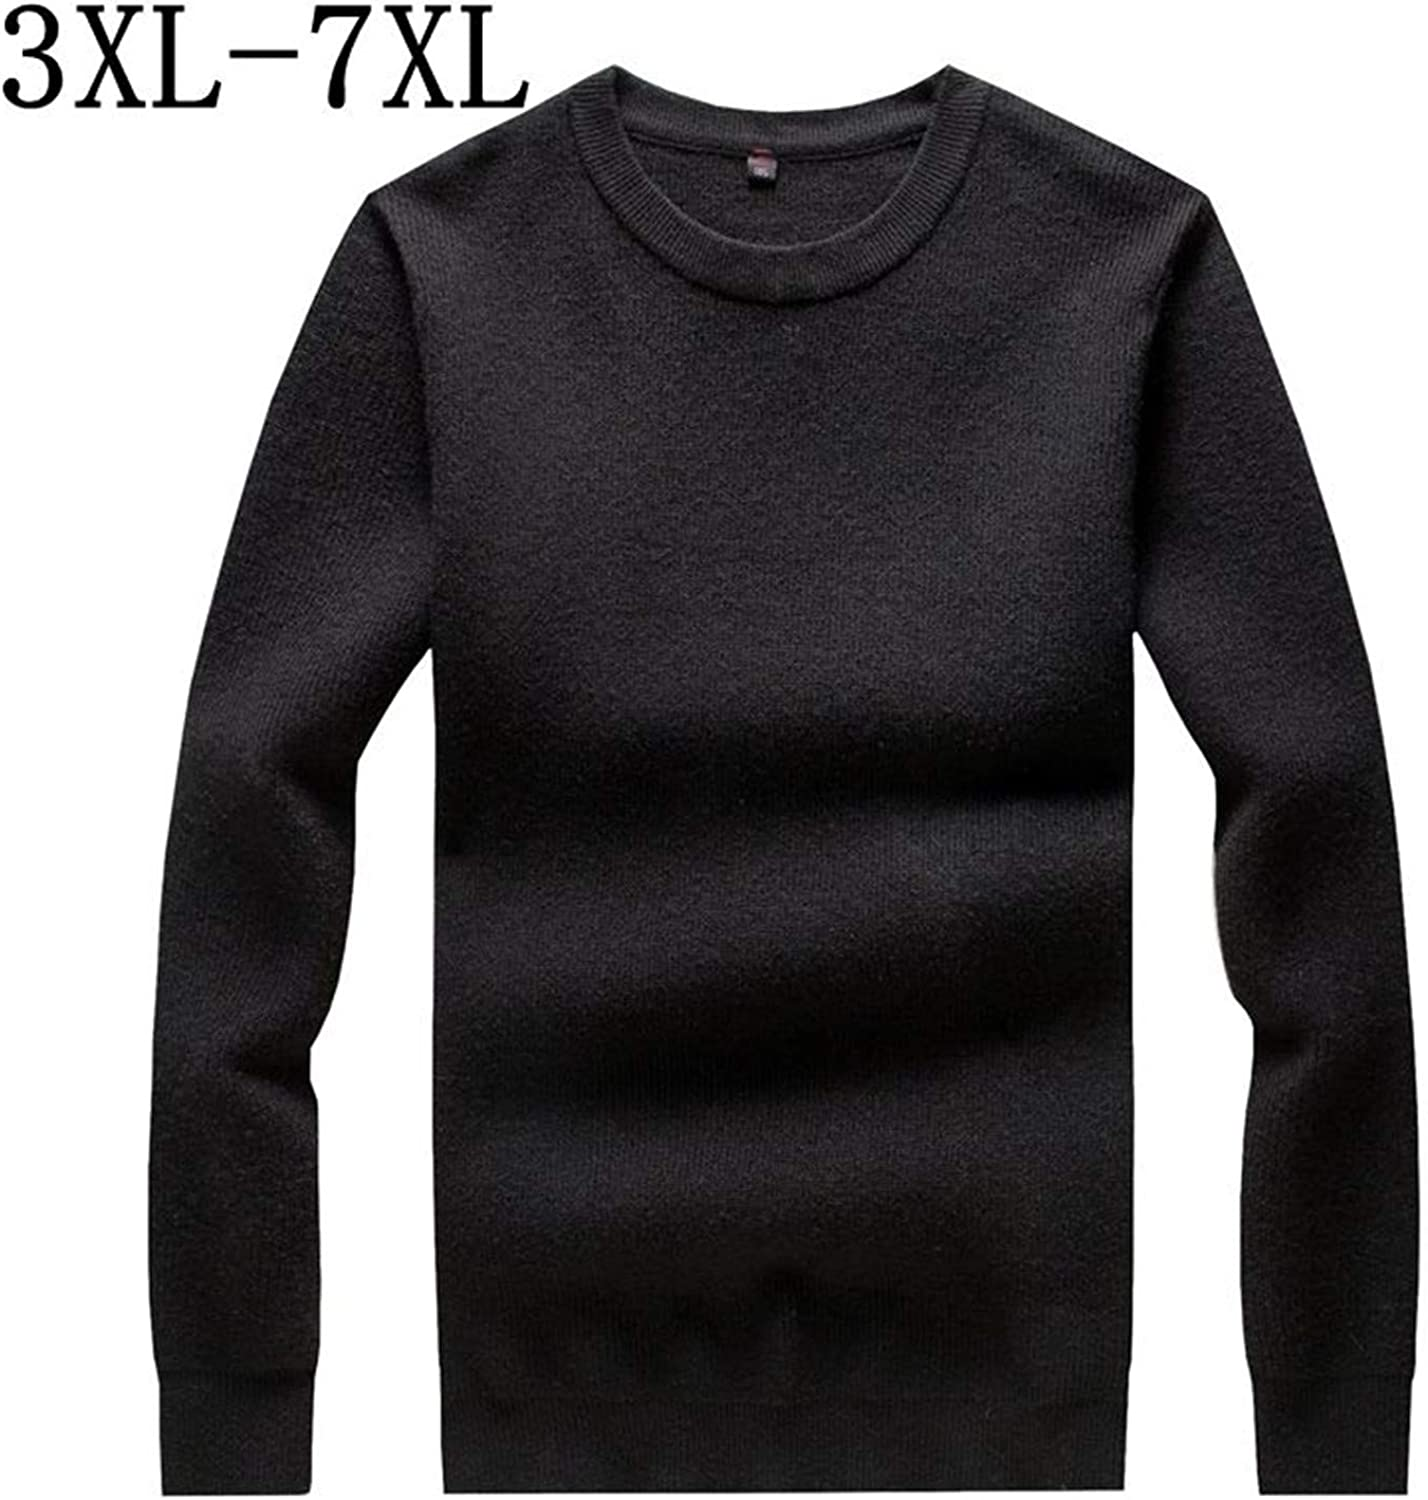 Coolred-Men Jacquard Knit Long Sleeve Solid Turtleneck Pullover Sweater